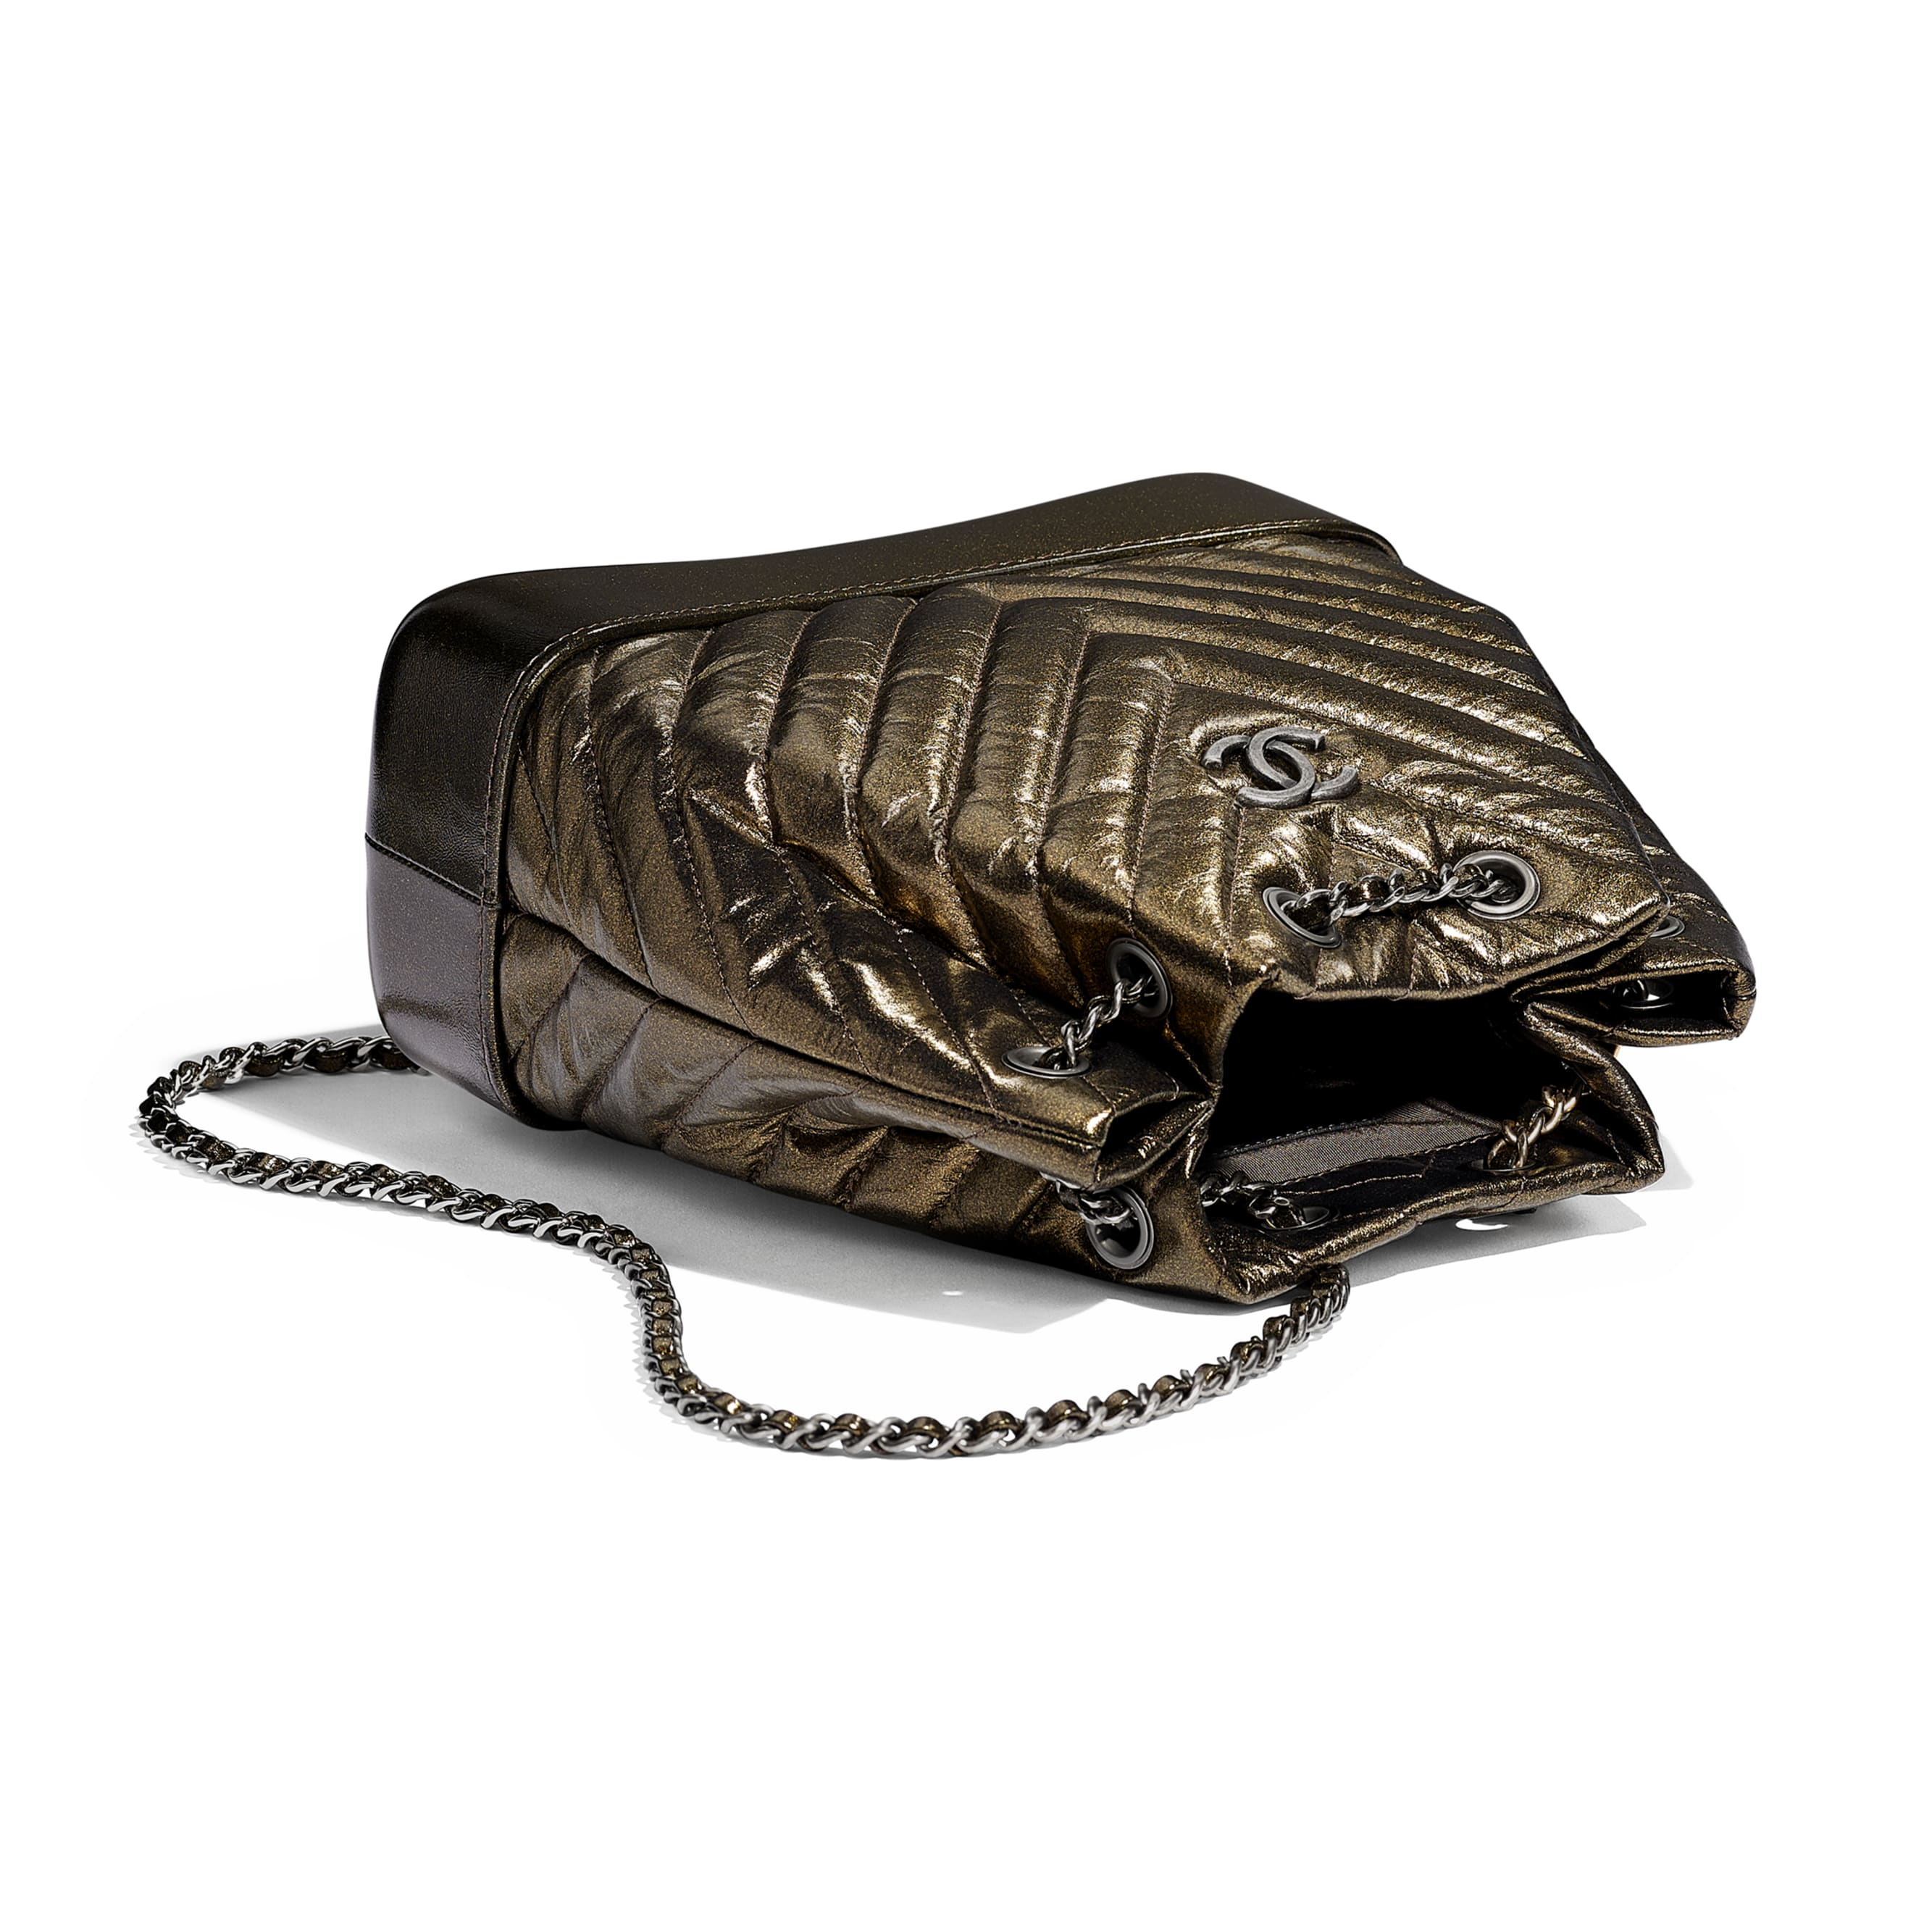 CHANEL'S GABRIELLE Small Backpack - Gold - Aged Calfskin, Silver-Tone & Gold-Tone Metal - Other view - see standard sized version